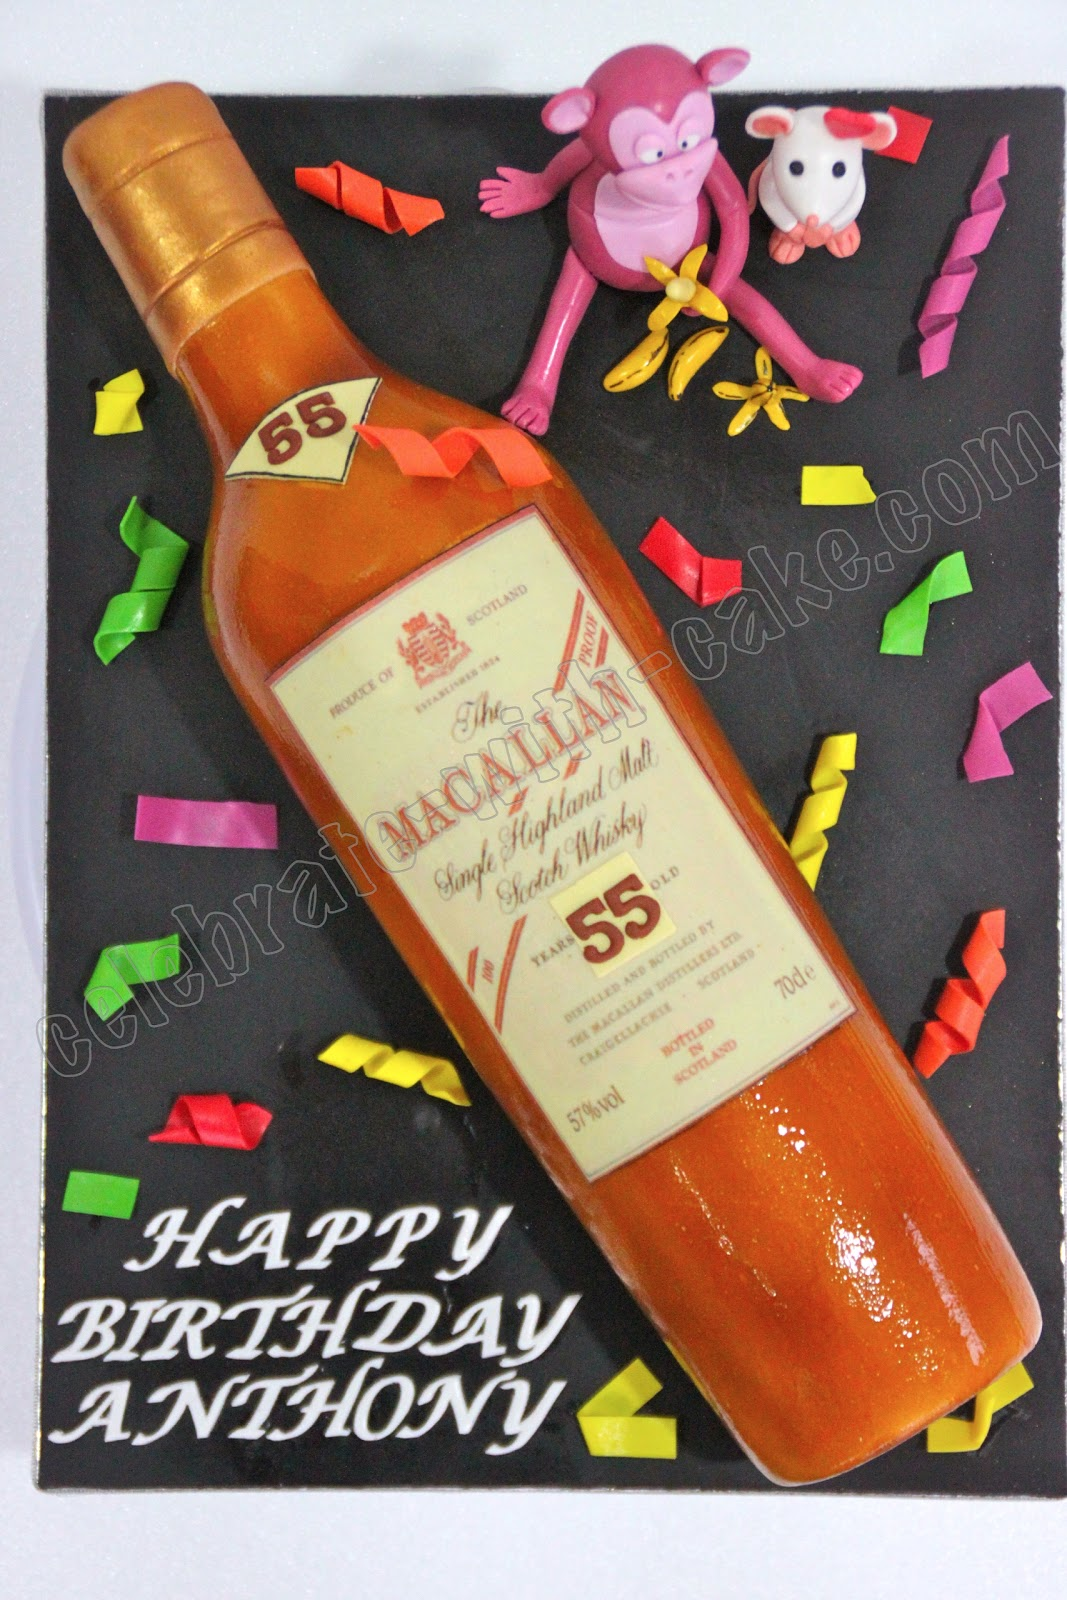 Macallan Whiskey Bottle Cake